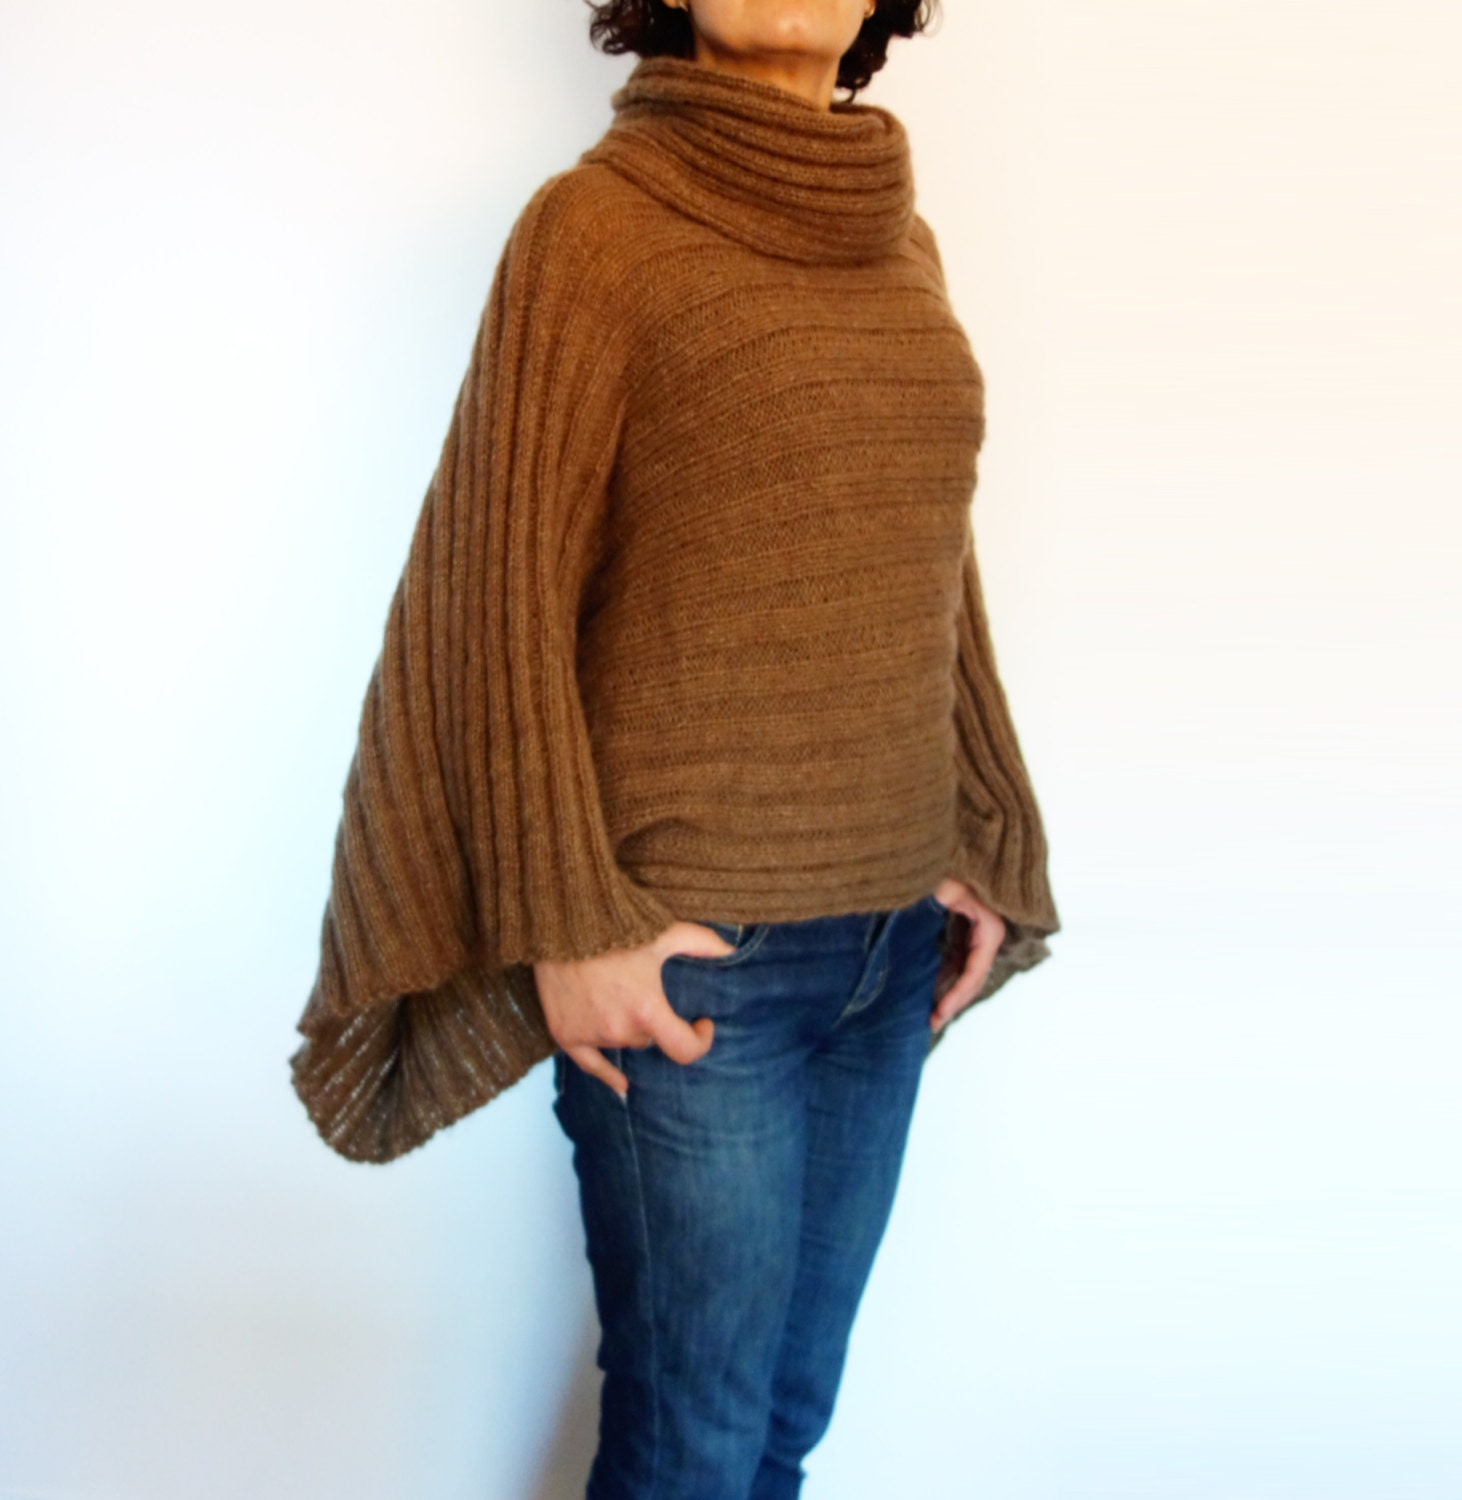 Knitting Pattern Sweater With Collar : Knitting Pattern Large Kimono Sleeve Sweater/Rolled Collar